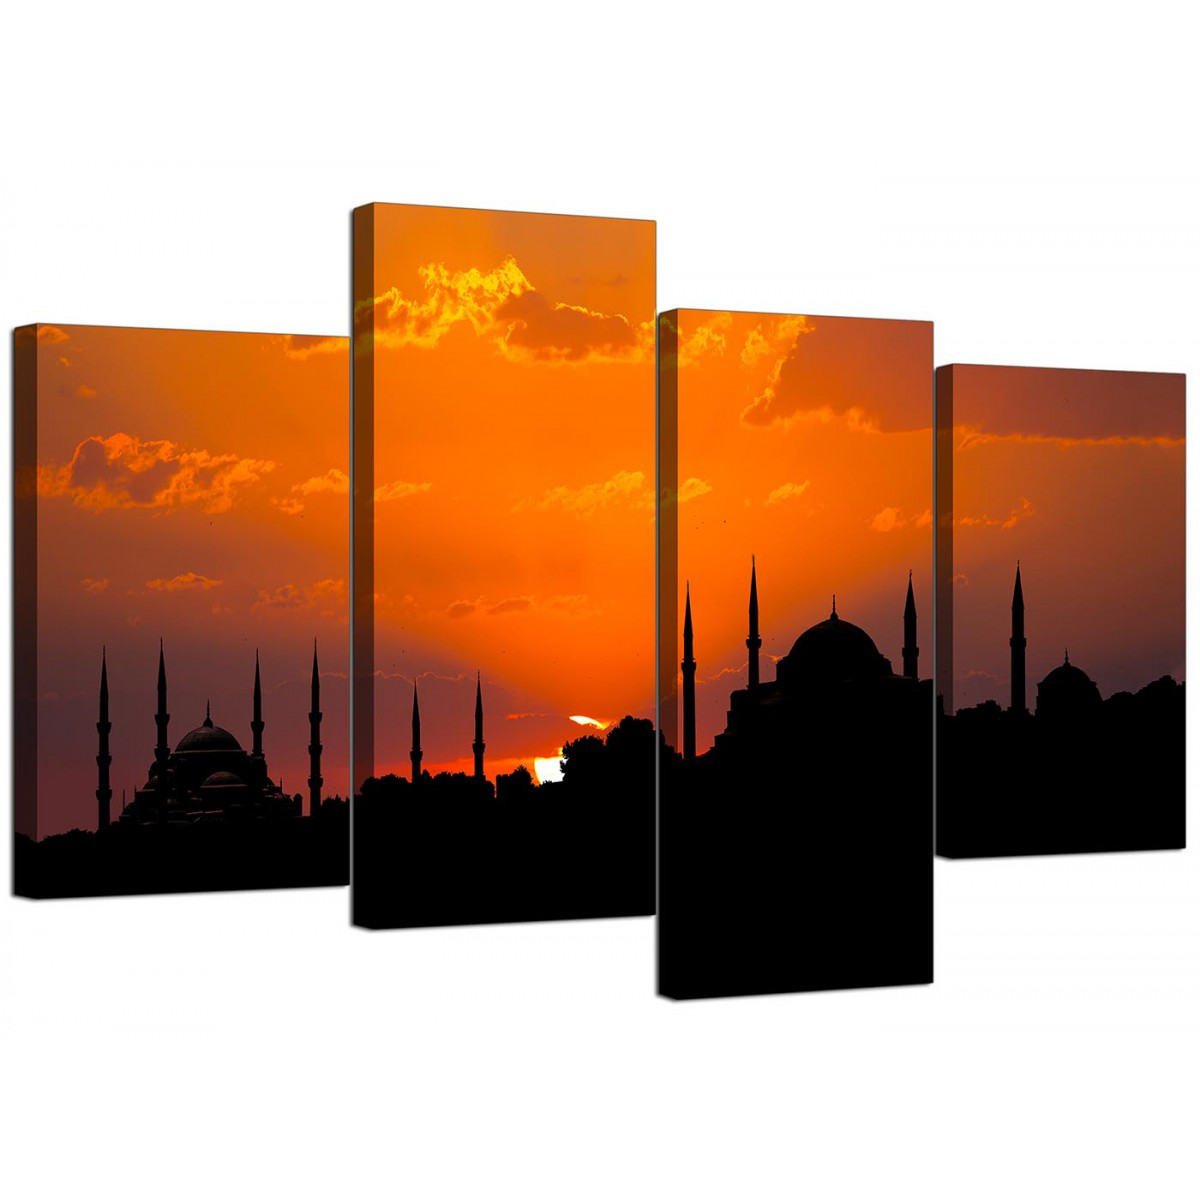 Cheap Canvas Pictures Islamic Canvas Prints Of An Istanbul Sunset For Your